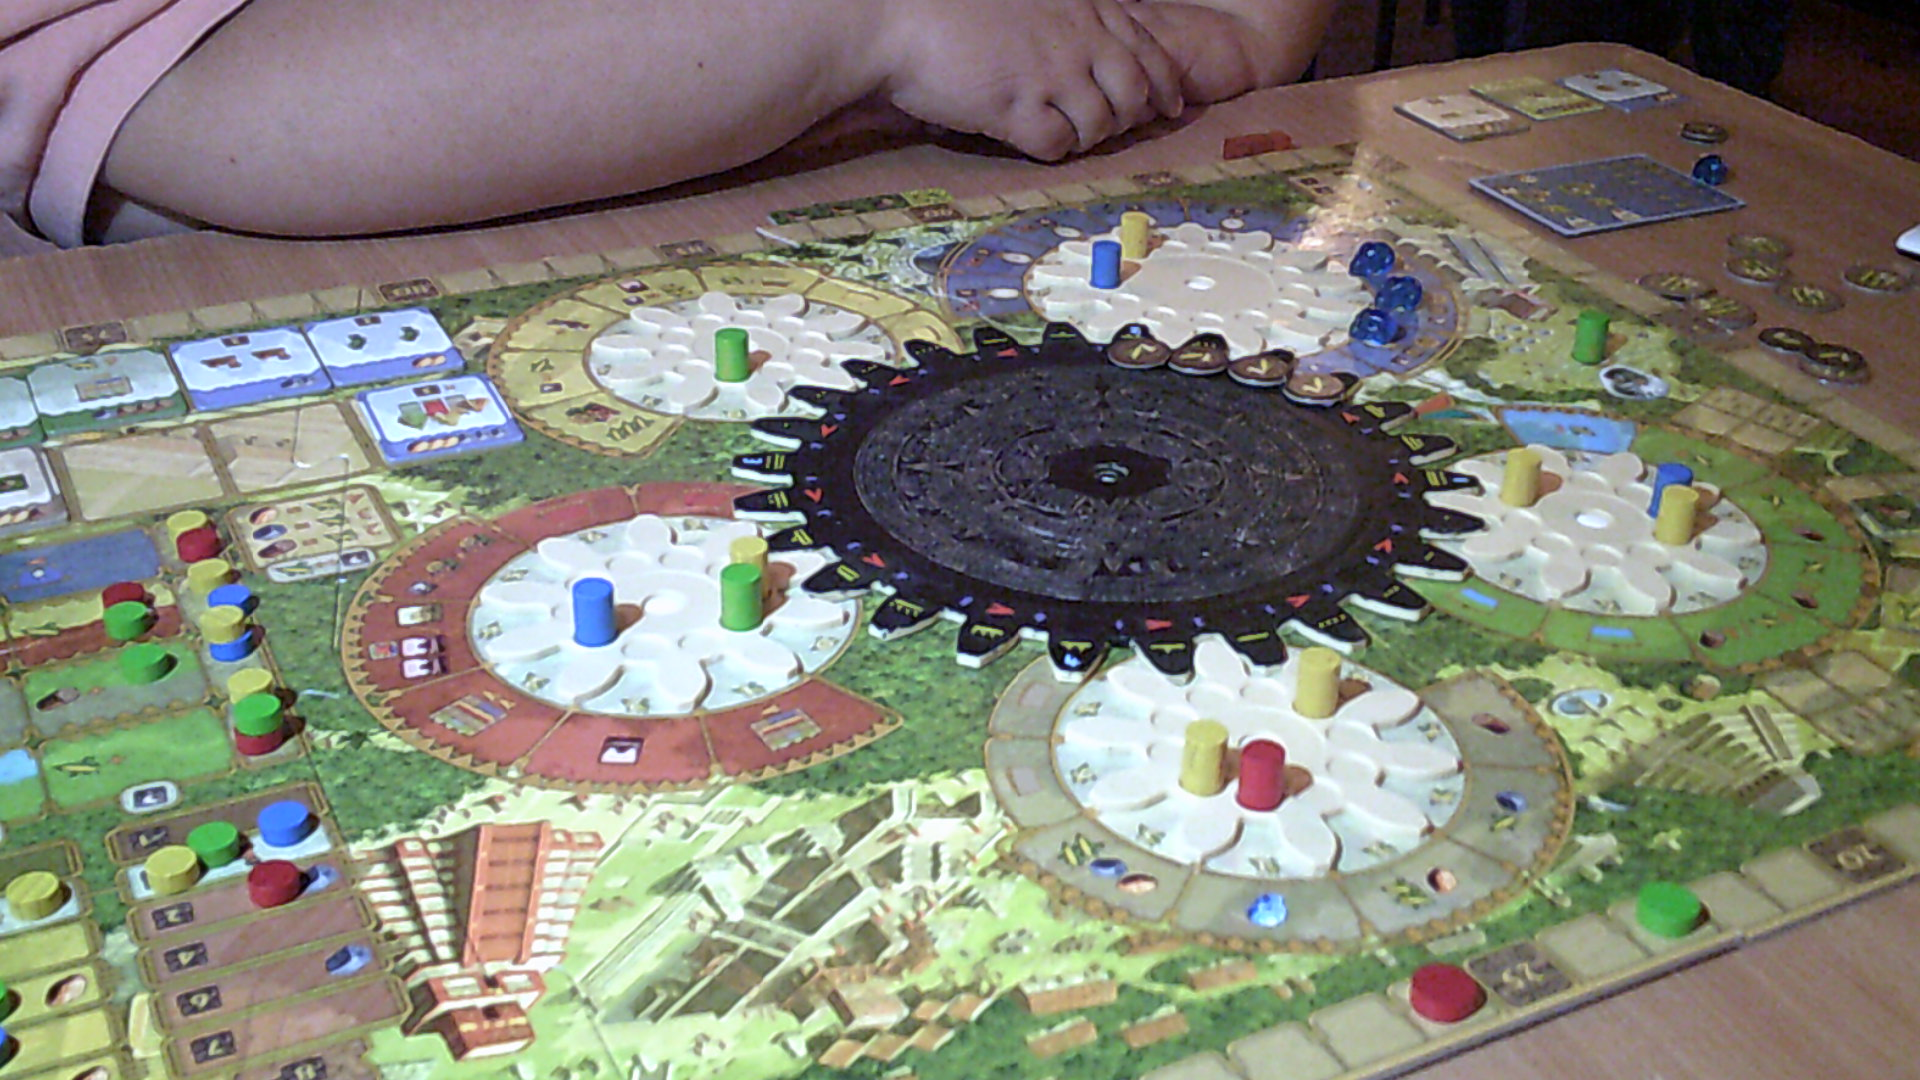 Tzolkin - which I lost by 1 point !!!